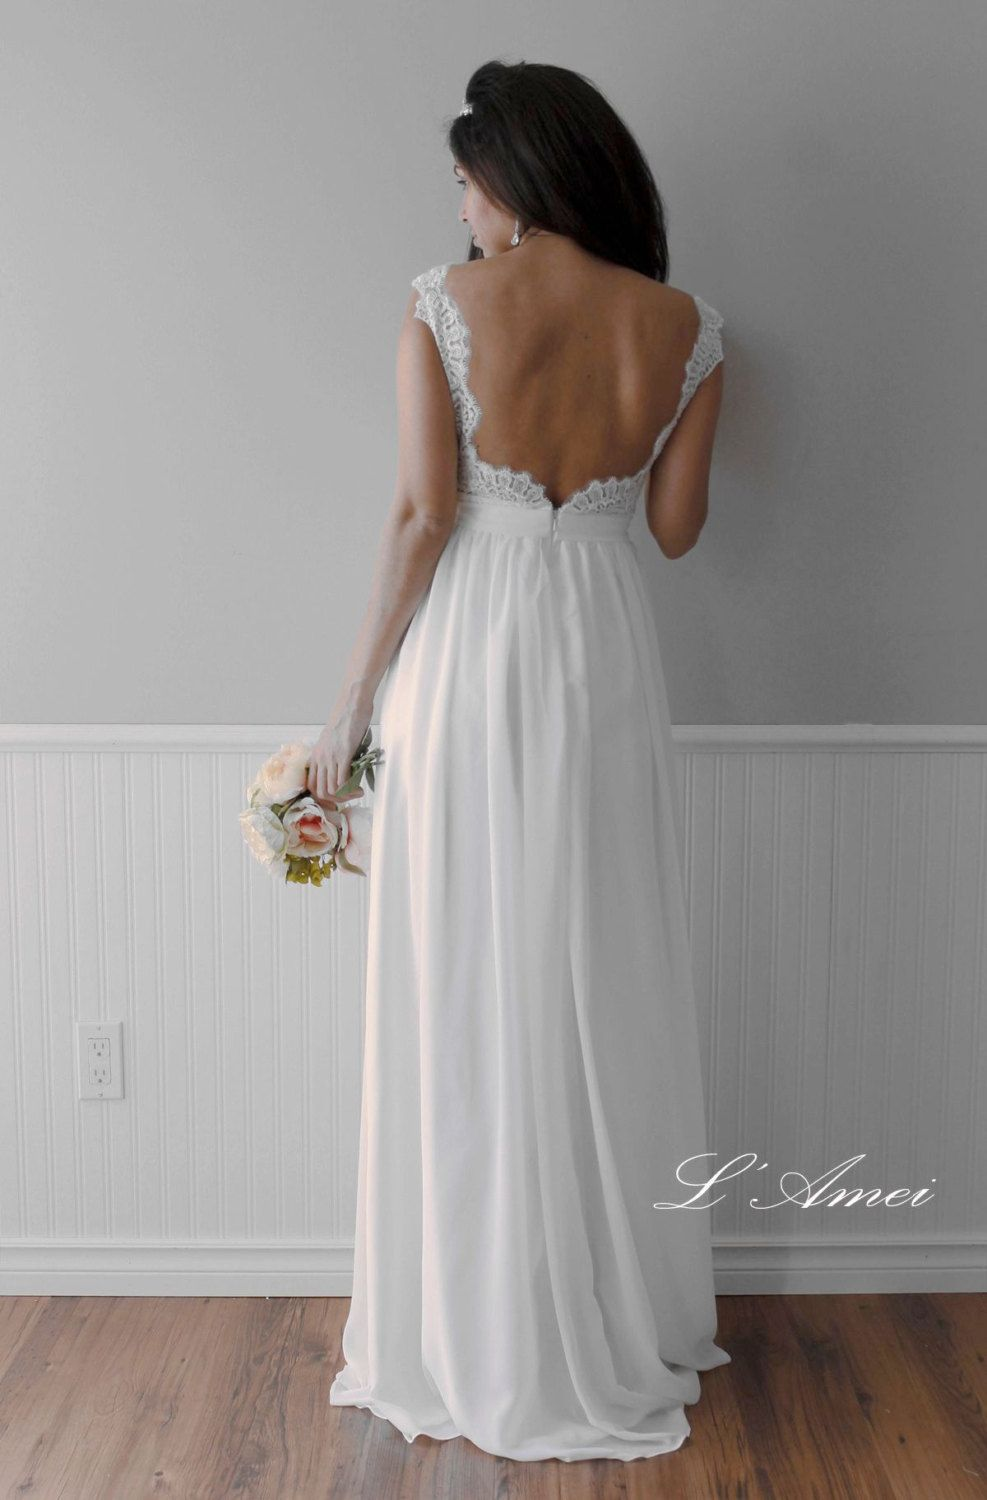 Romantic backless boho lace wedding dress great for outdoors or